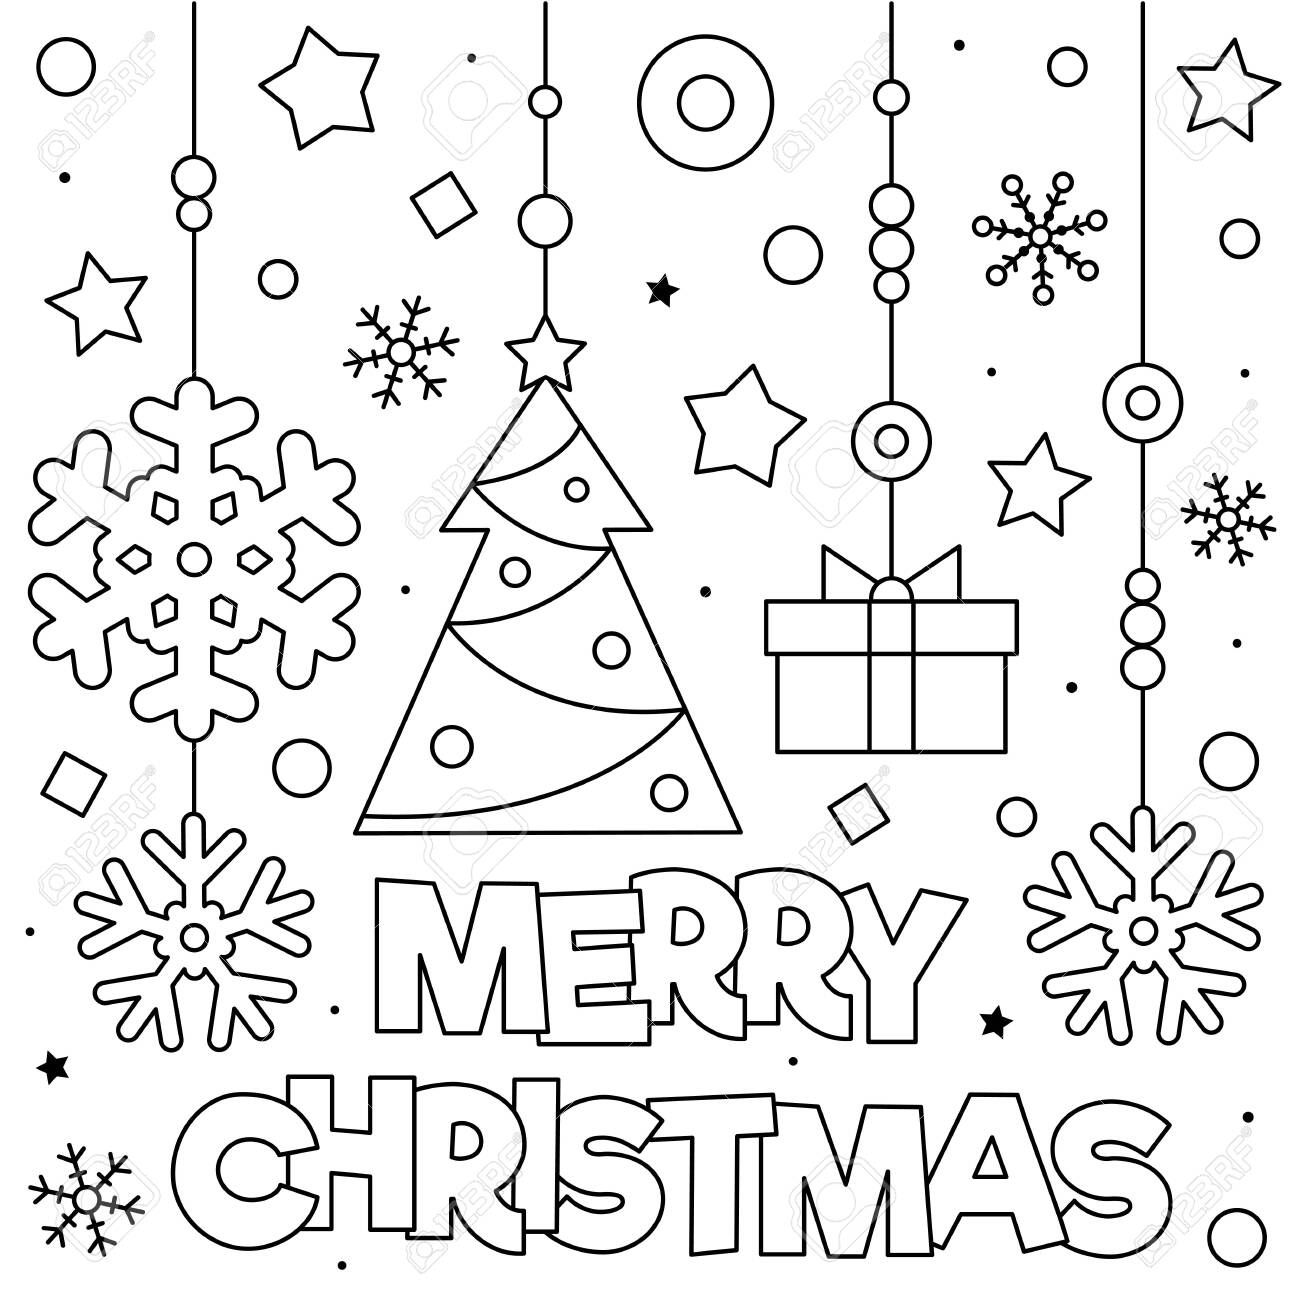 Merry Christmas Coloring Page Black And White Vector Illustration Illustrat Christmas Coloring Sheets Merry Christmas Coloring Pages Christmas Coloring Pages